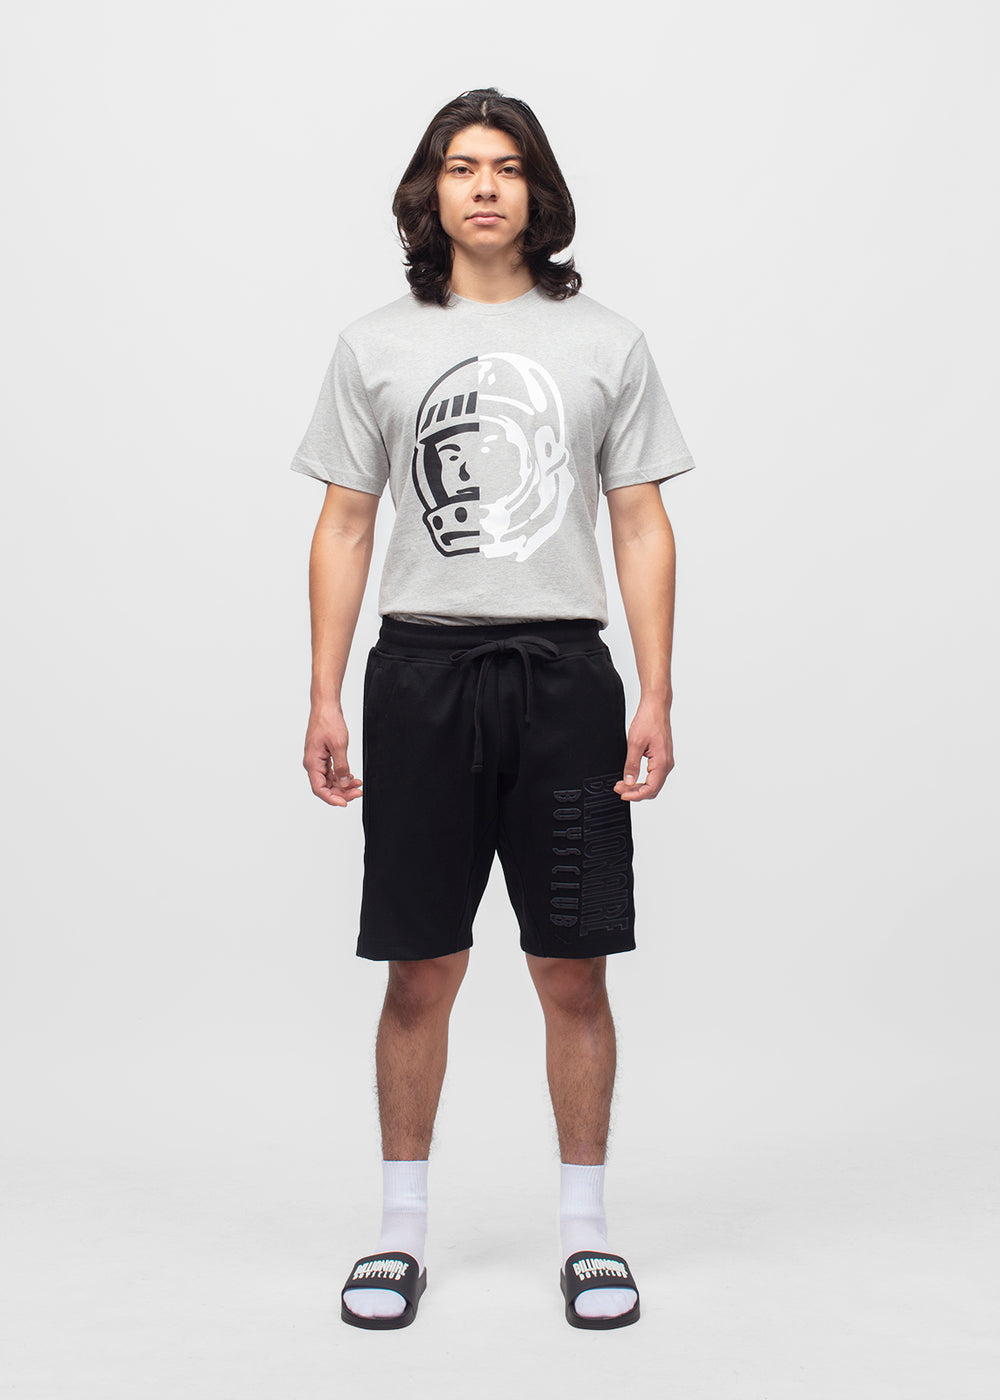 billionaire-boys-club-straight-font-shorts-891-6100-blk-blk-4